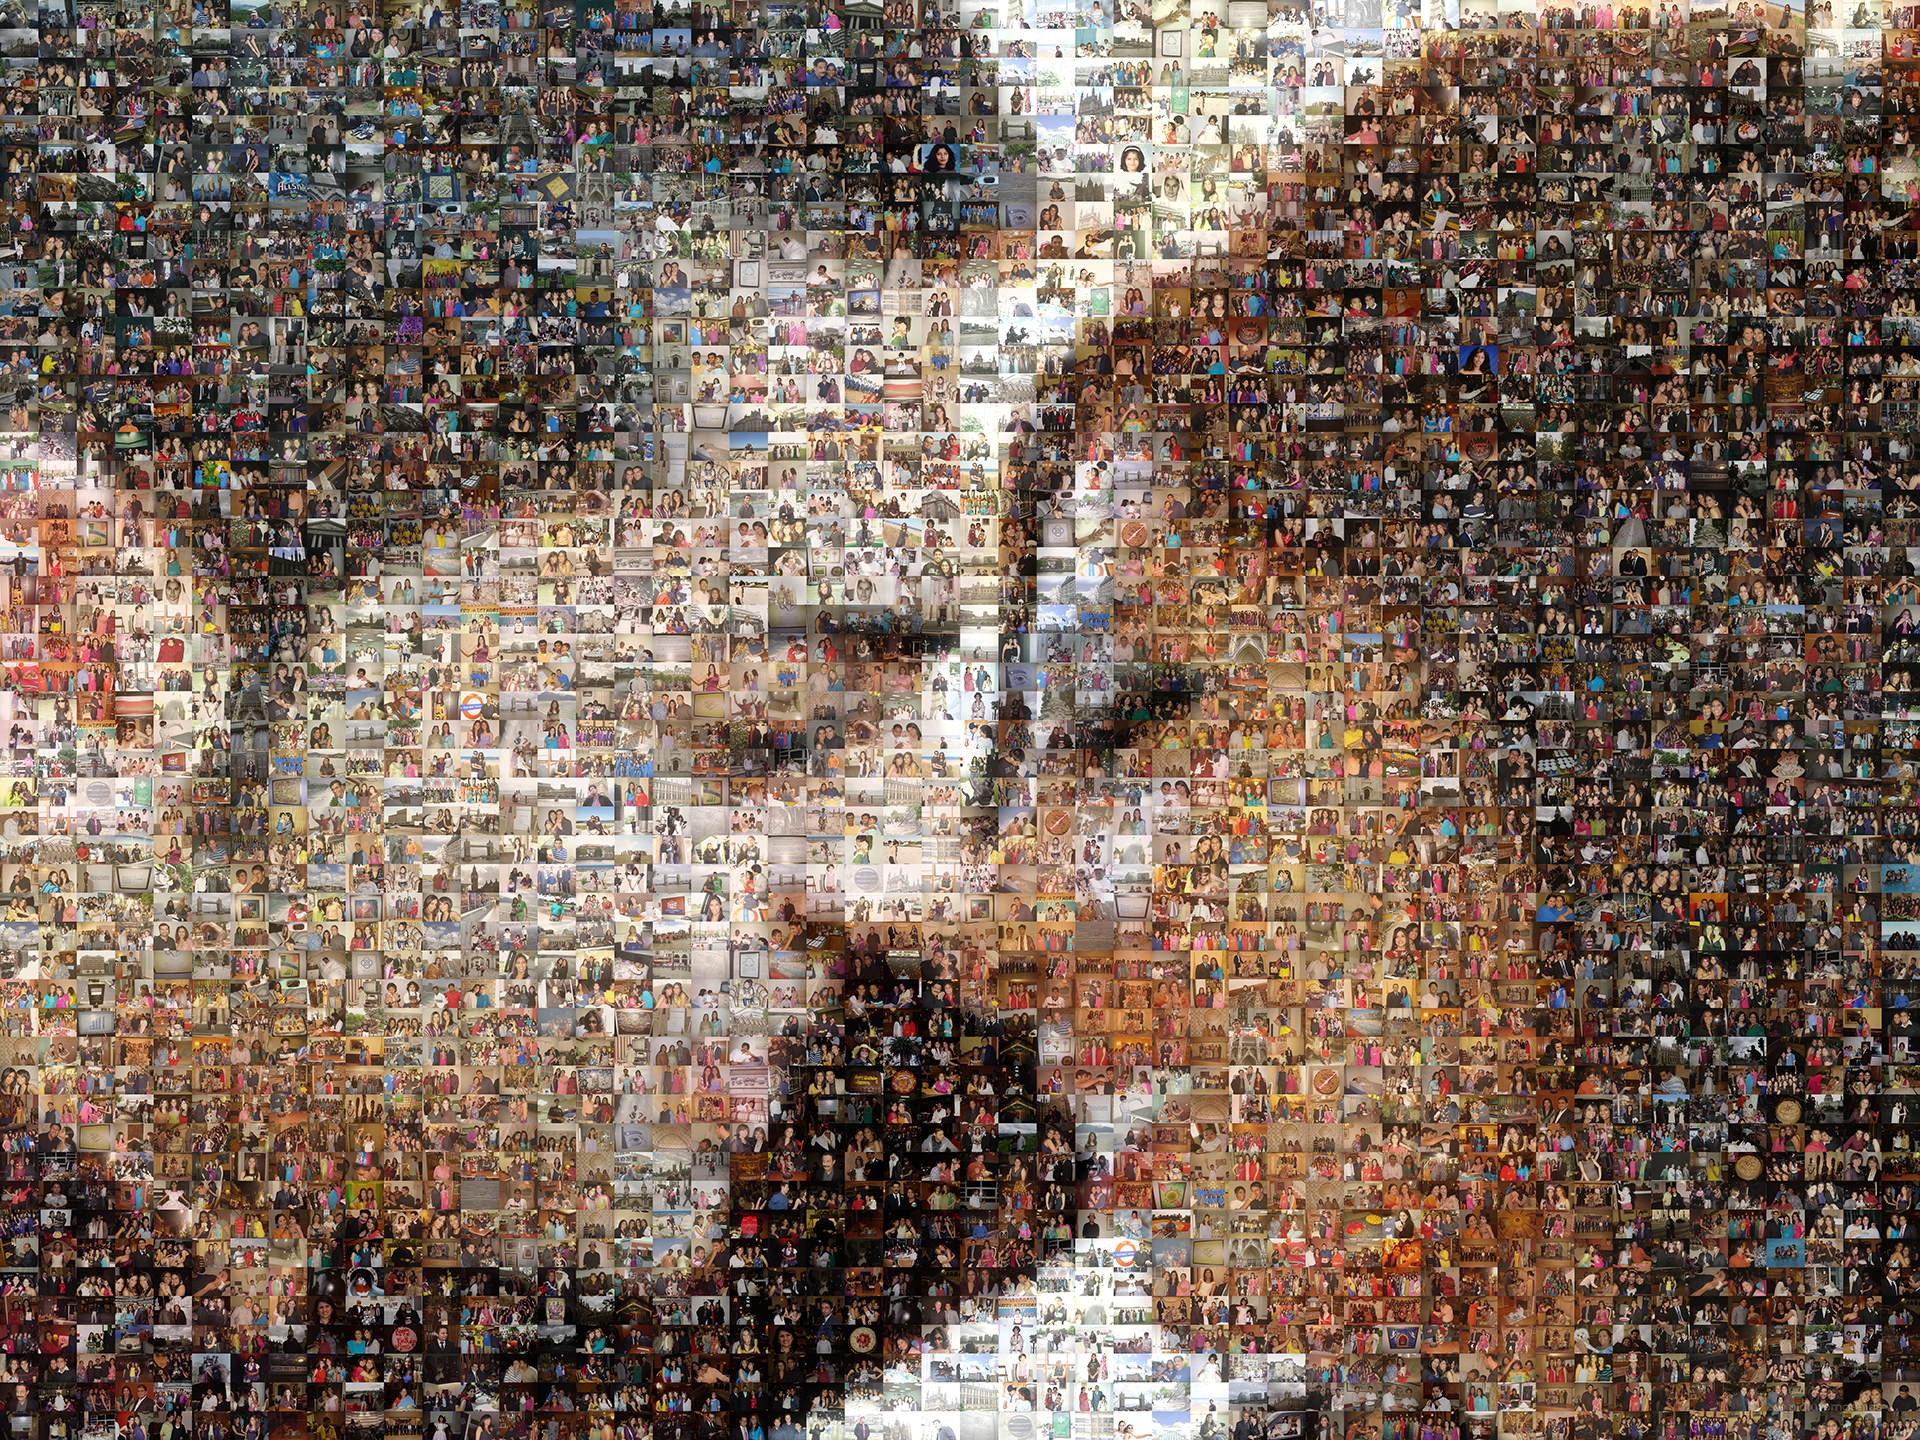 photo mosaic created using over 1,600 customer selected photos